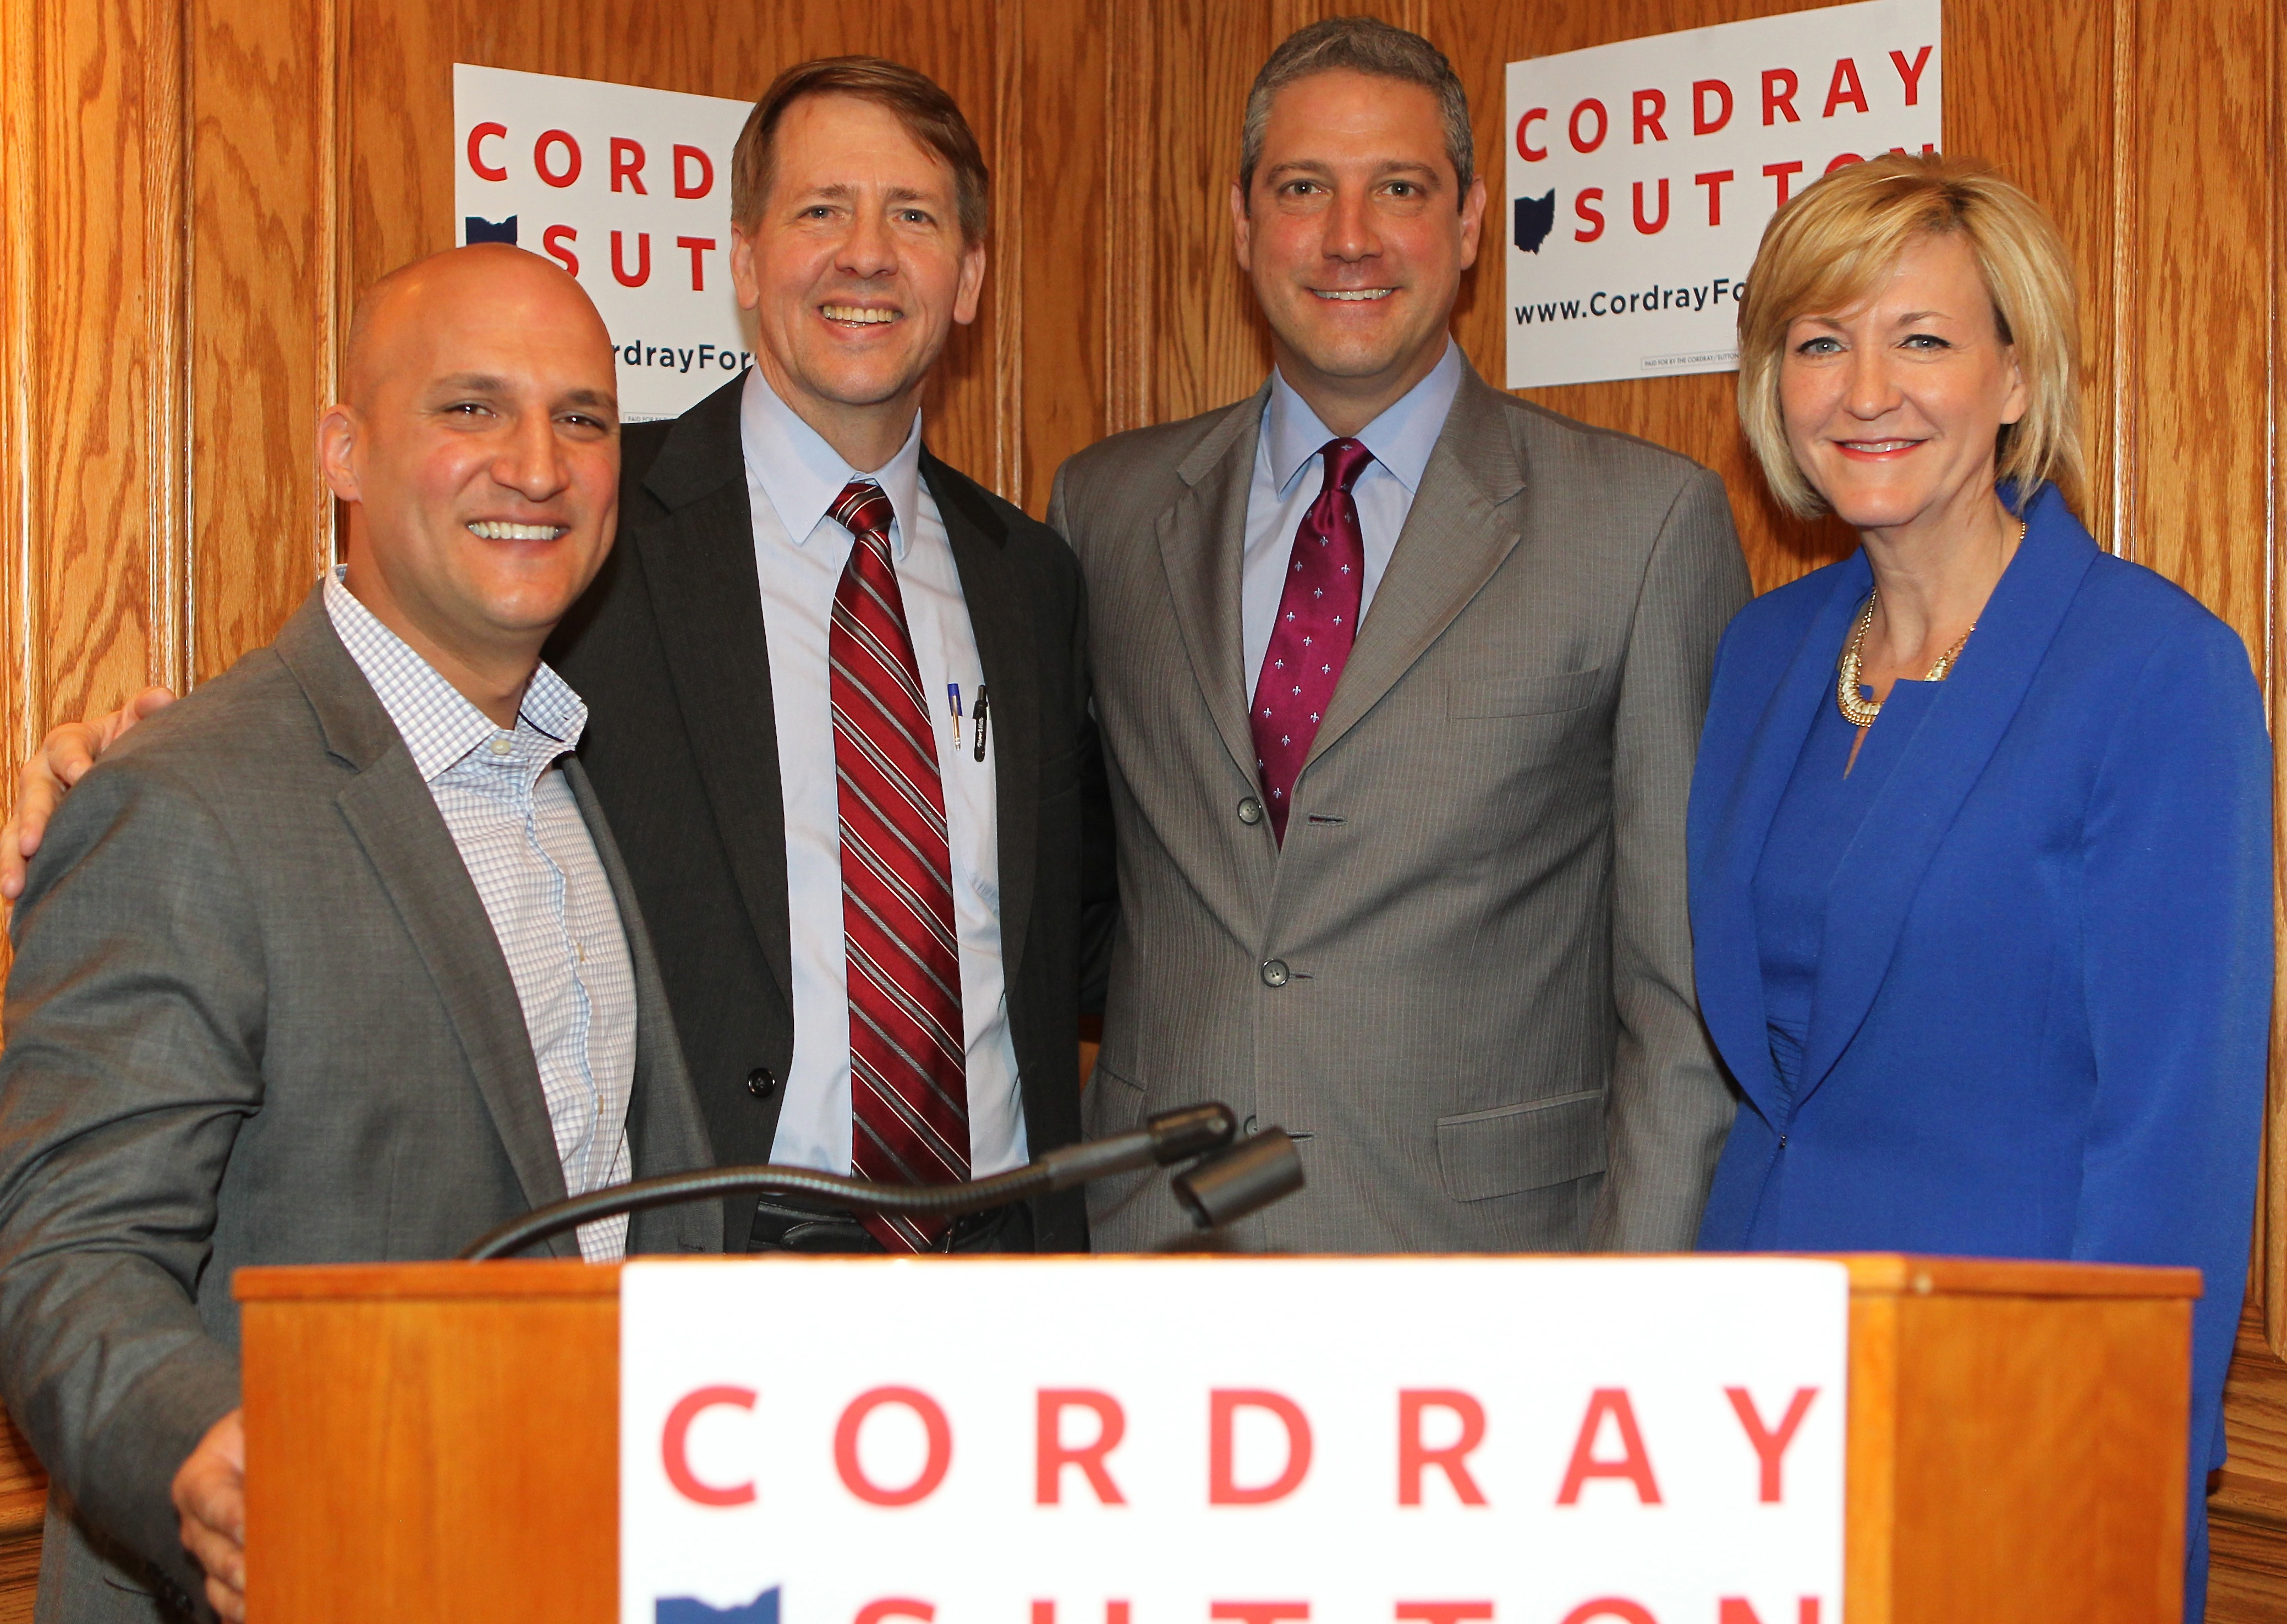 Cordray says he'll fight for the Valley if elected